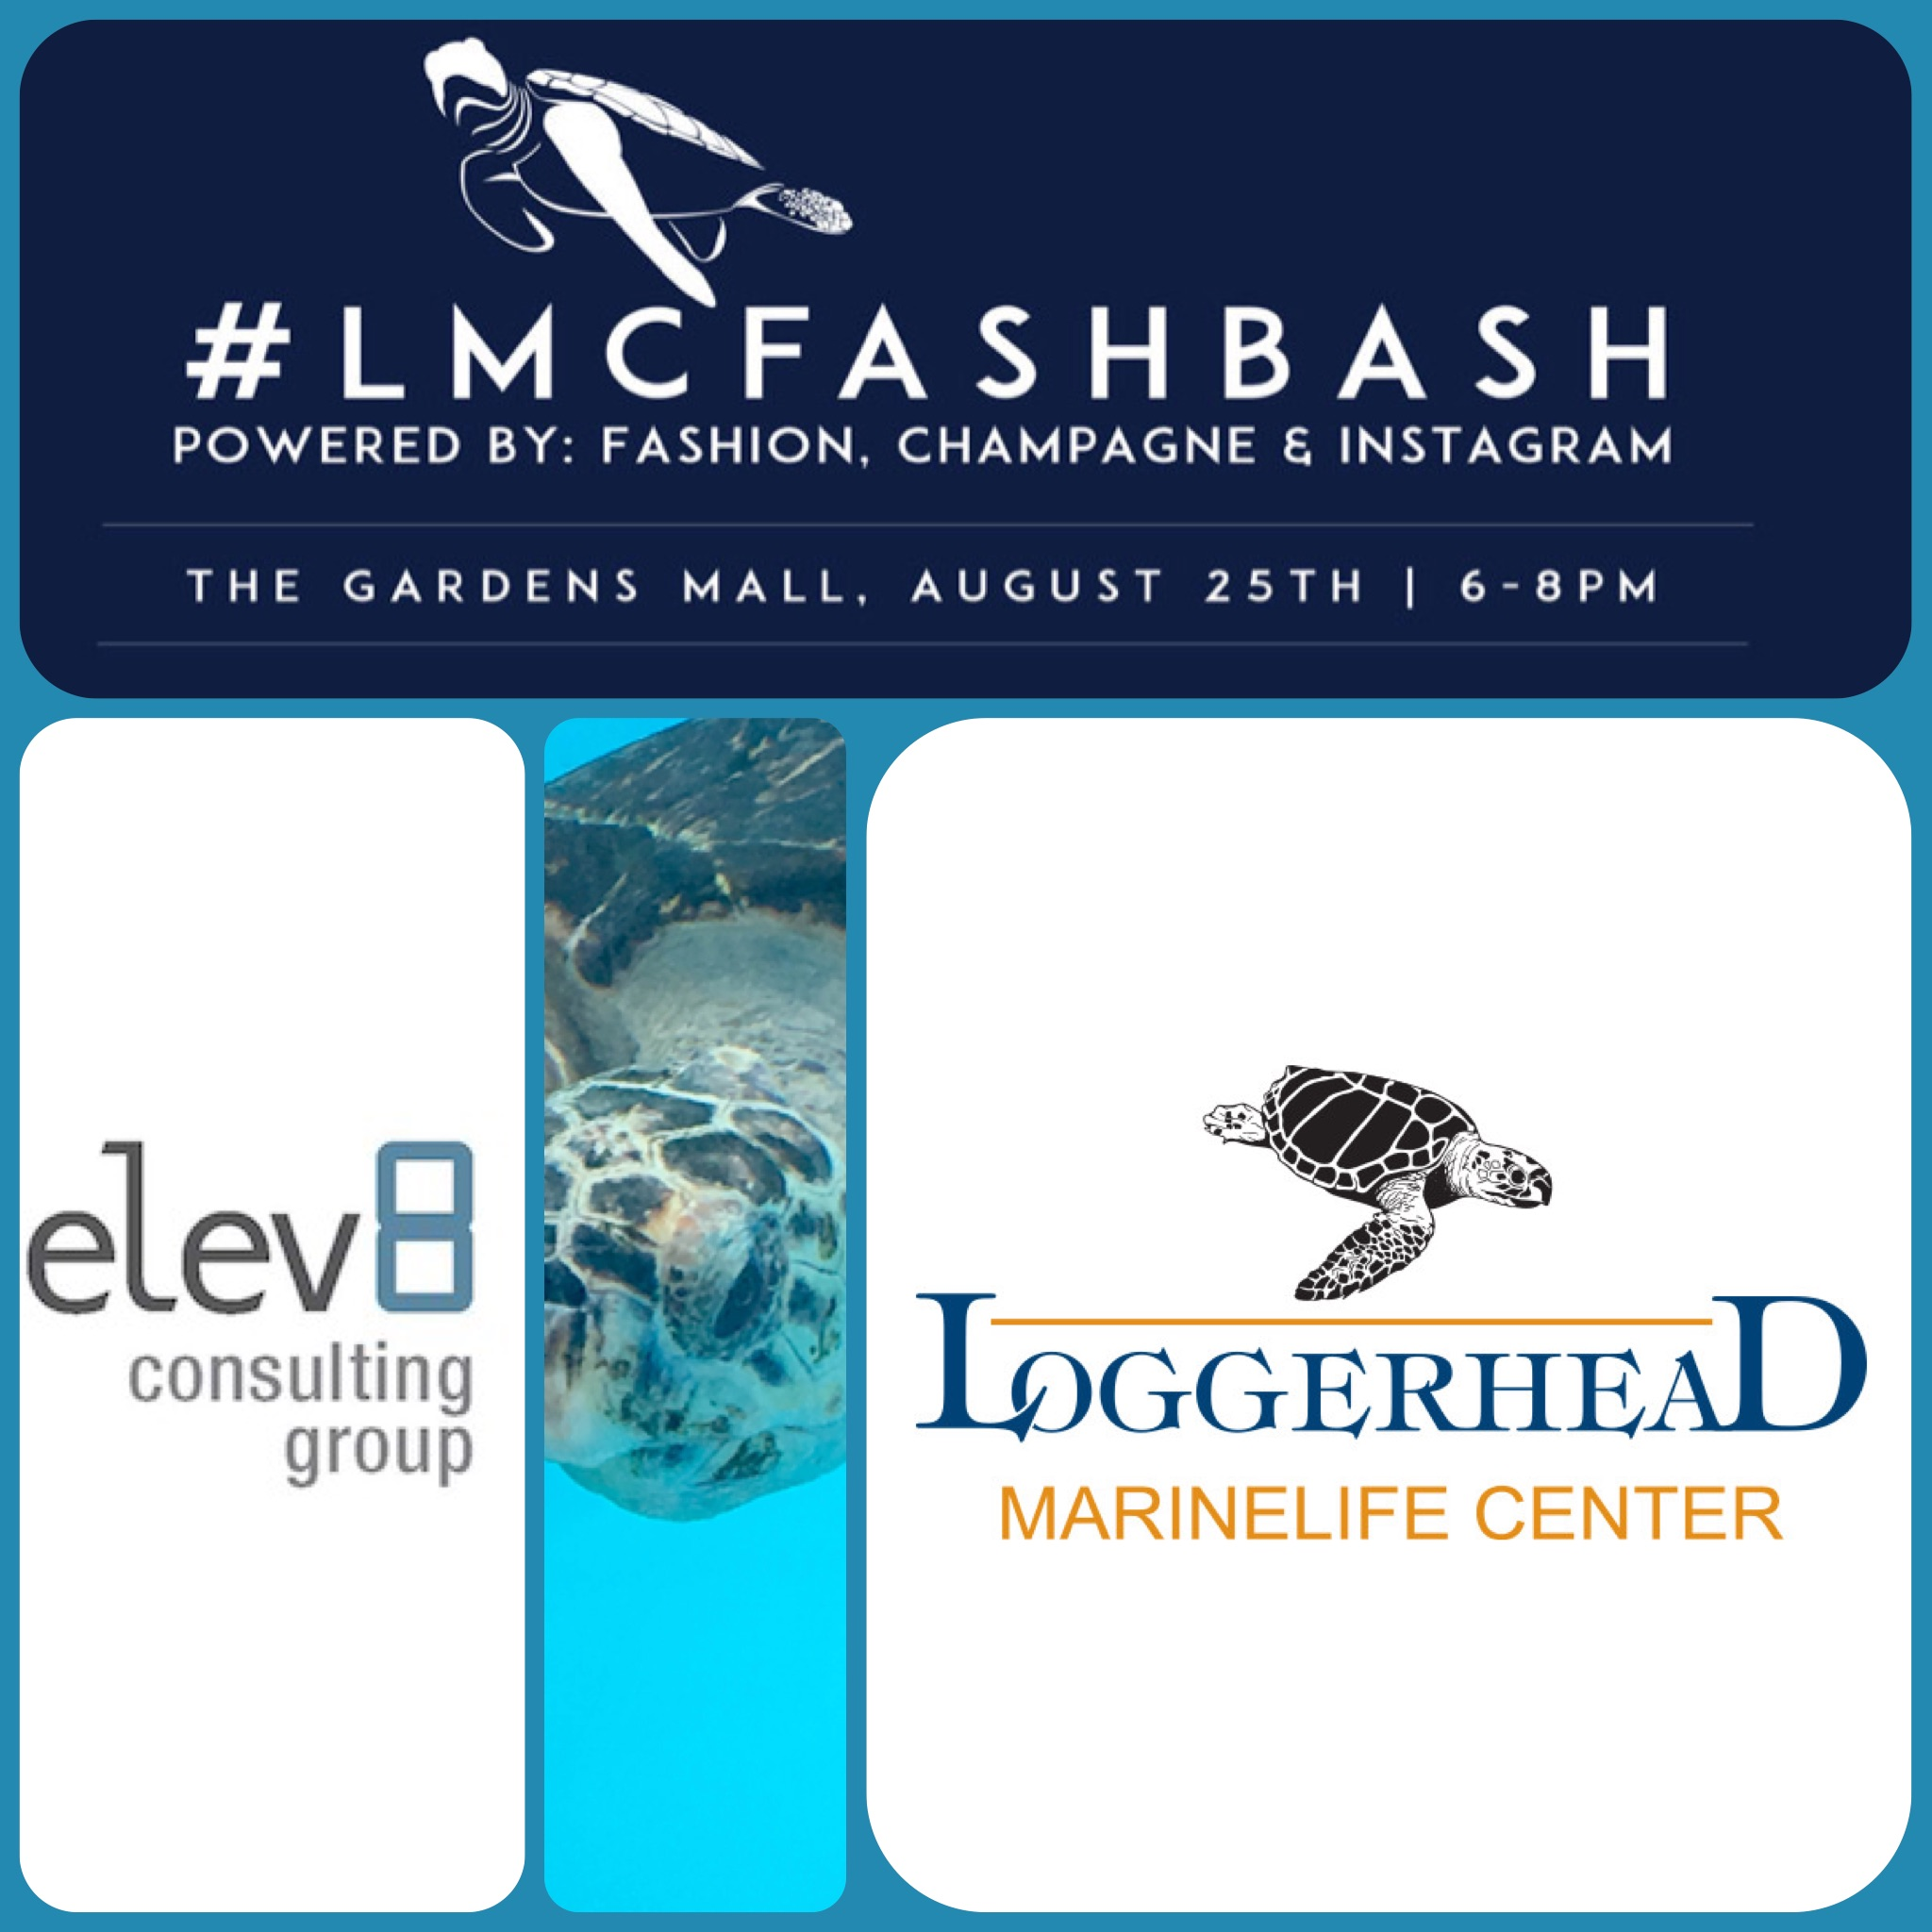 Elev8 Consulting Group LMCFashBash Loggerhead Marinelife Center